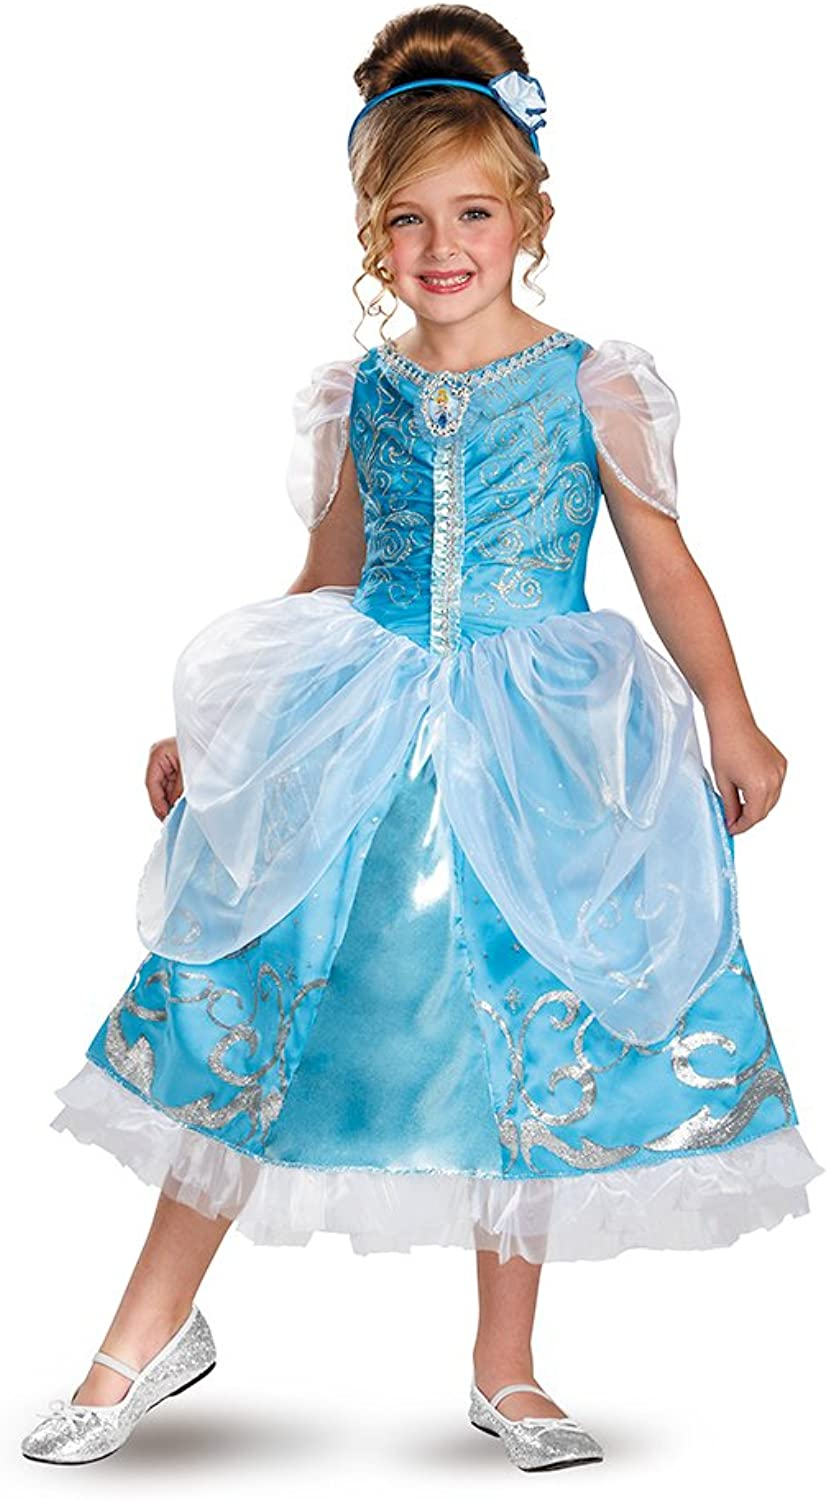 Disguise Costumes Disguise Disney'S Cinderella Sparkle Deluxe Girls Costume 3T4T One color